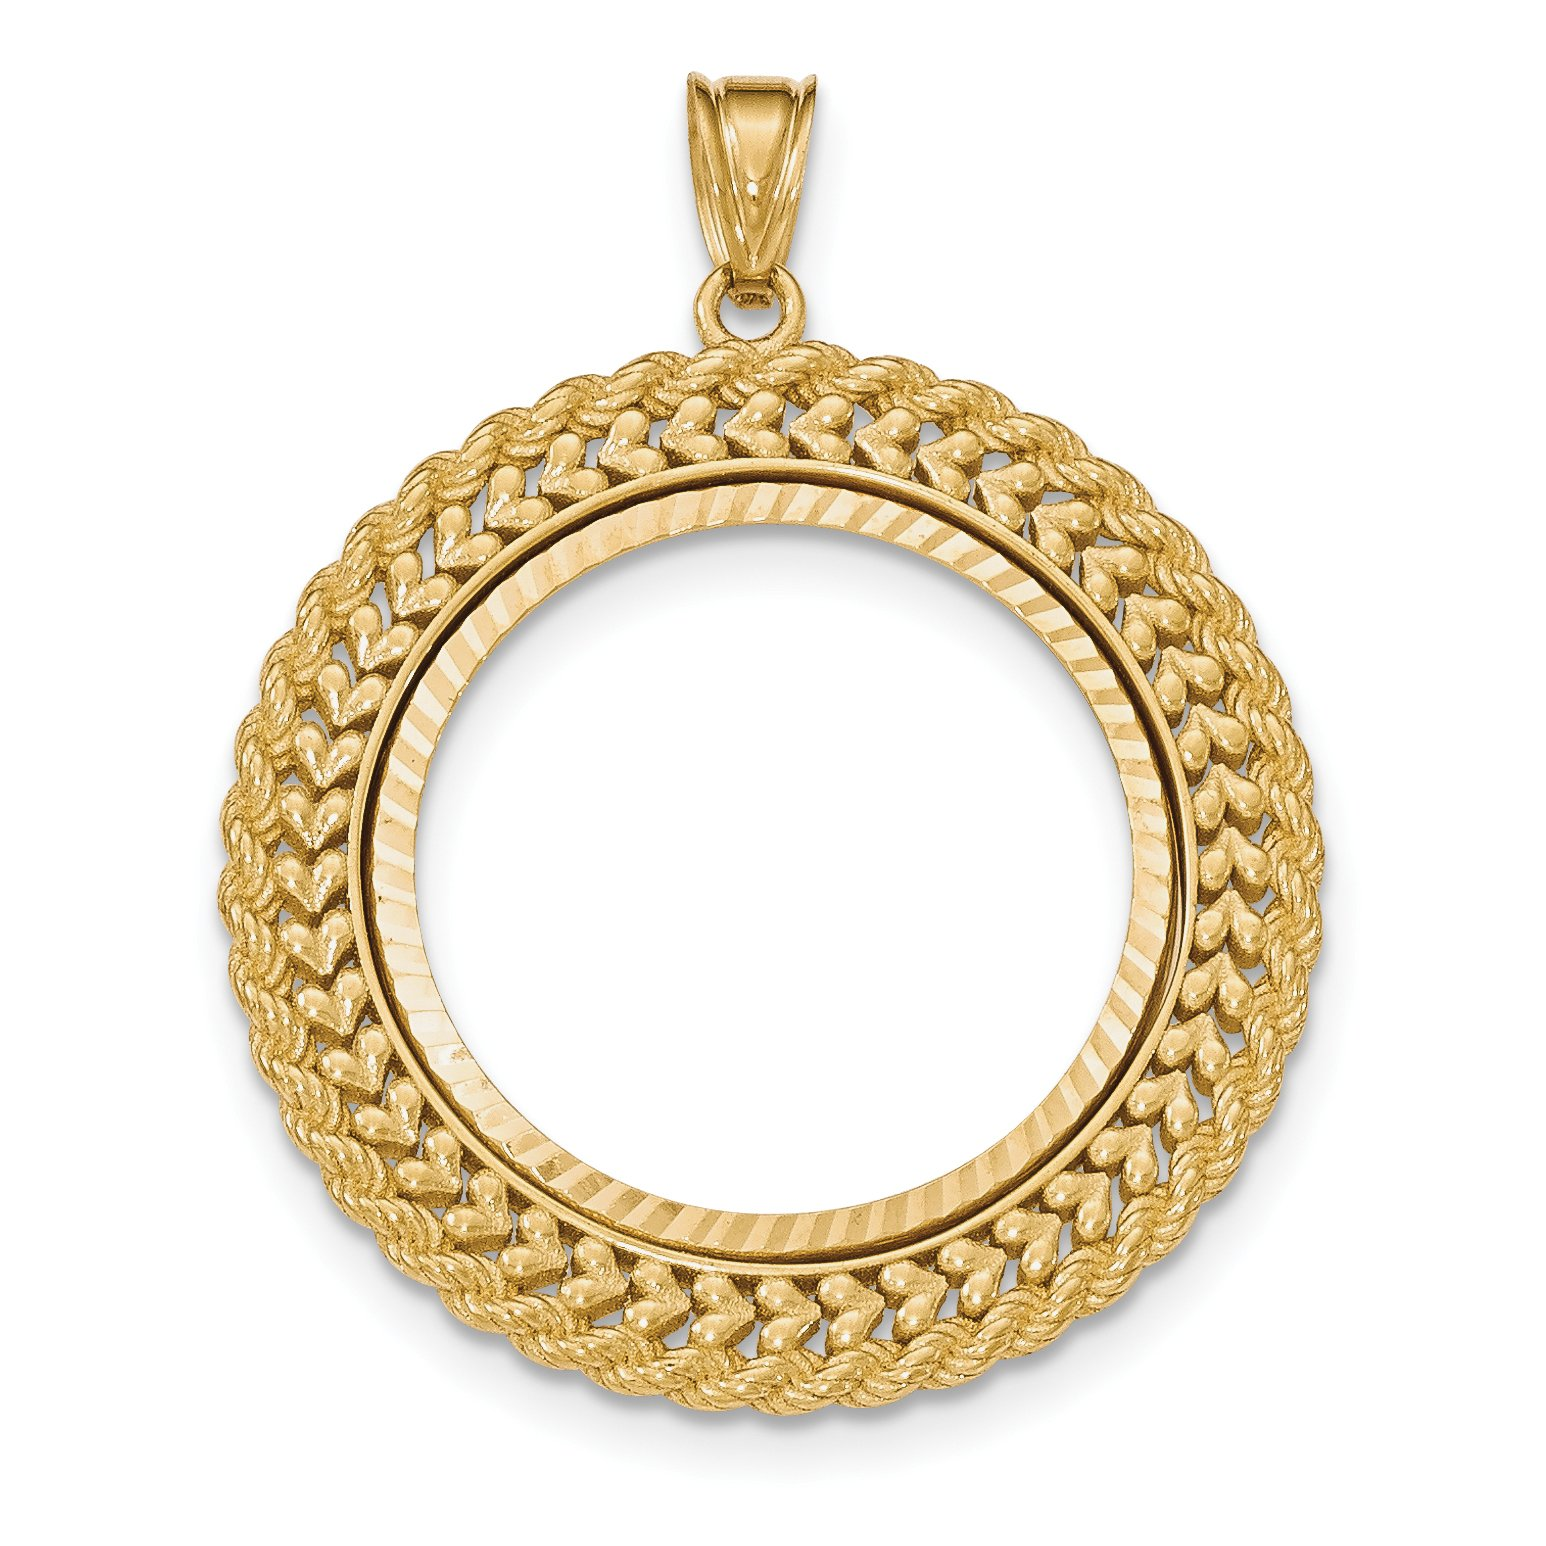 14k Yellow Gold Double Row D/C 1/2 oz American Eagle Coin Bezel 27 mm x 2.2 mm